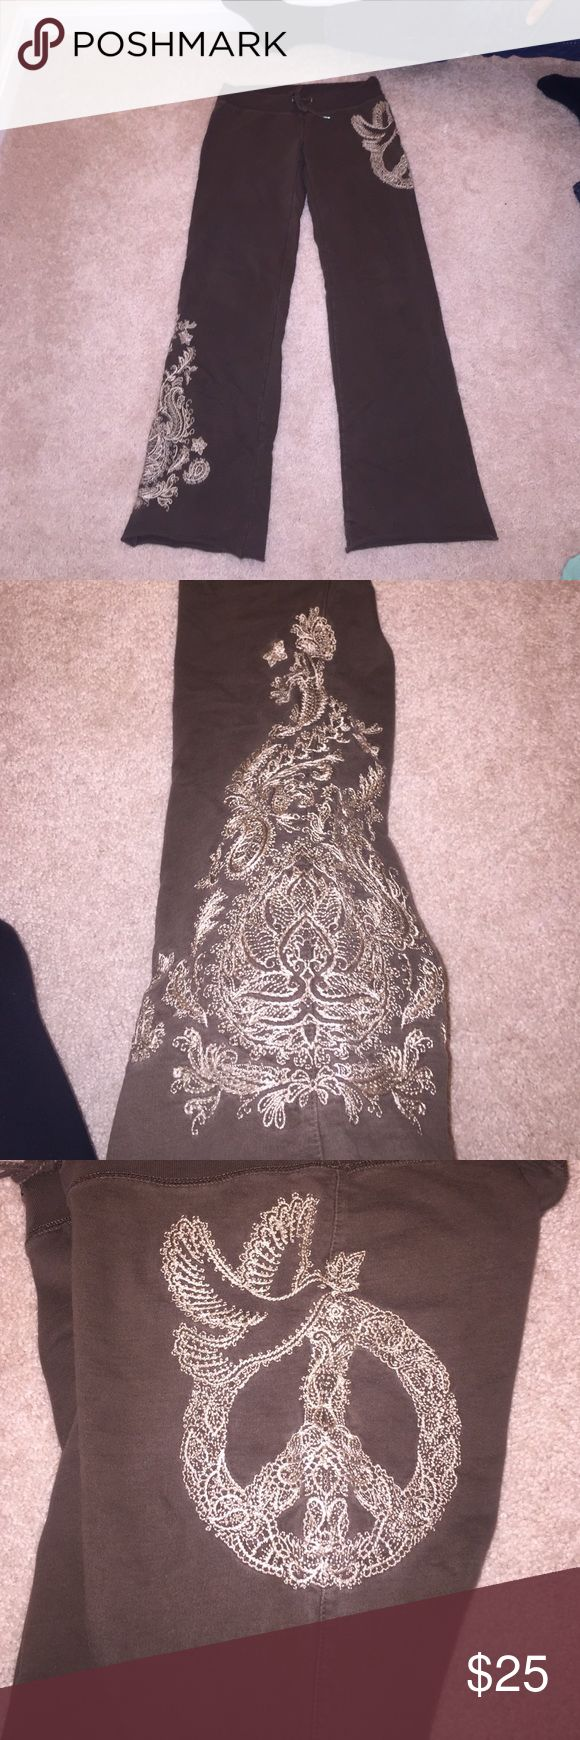 Lucky Brand lounge pants EUC Lucky Brand sweat/lounge pants with embroidered designs. Inseam 30 inches. Drawstring waist. Size XS but would fit a S or M better. Very comfortable. There is tiny snag at the very bottom of pants but you can't even tell when they are on and can be easily sewn. (price reflects) Bought for $70+tax. If you have any questions, please ask!! EVERYTHING MUST GO!! ALL PRICES ARE VERY LOW!! I SHIP SAME OR NEXT DAY! Lucky Brand Pants